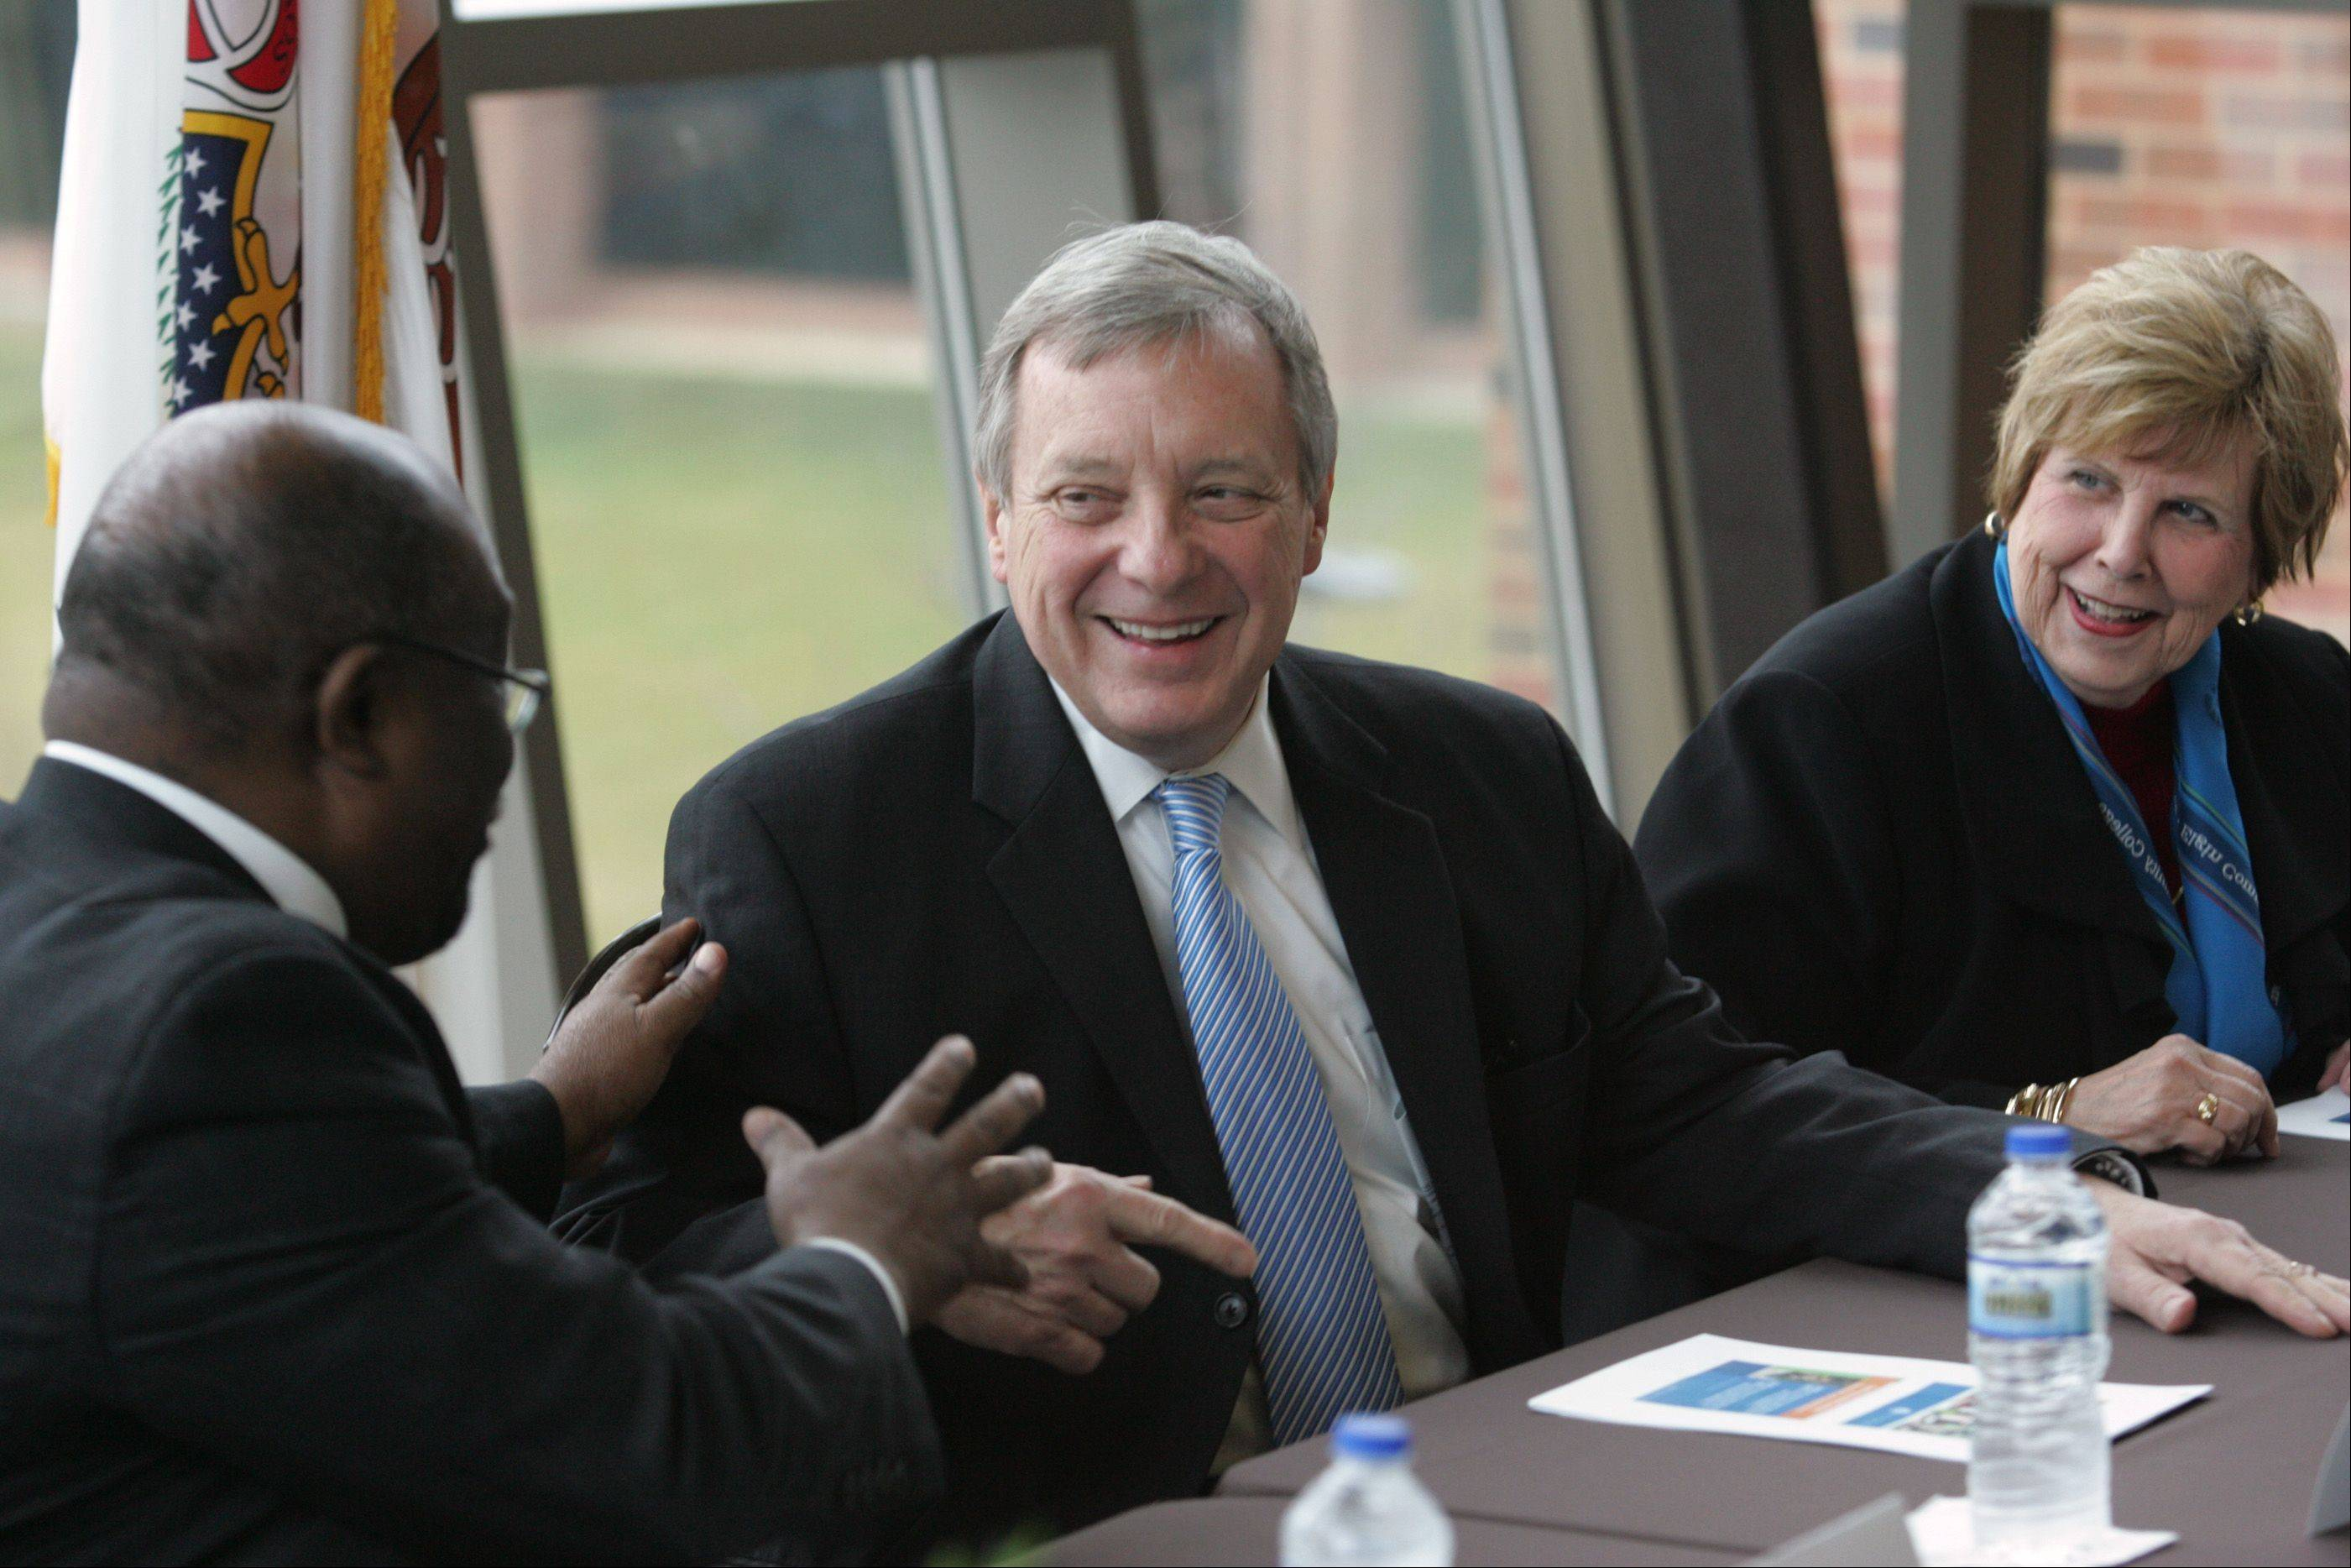 Sen. Dick Durbin laughs as he talks with Elgin Community College President David Sam Friday at the Elgin campus. Behind him is ECC trustee Eleanor MacKinney. Durbin met with ECC officials and students about how the college has dealt with student loan issues.